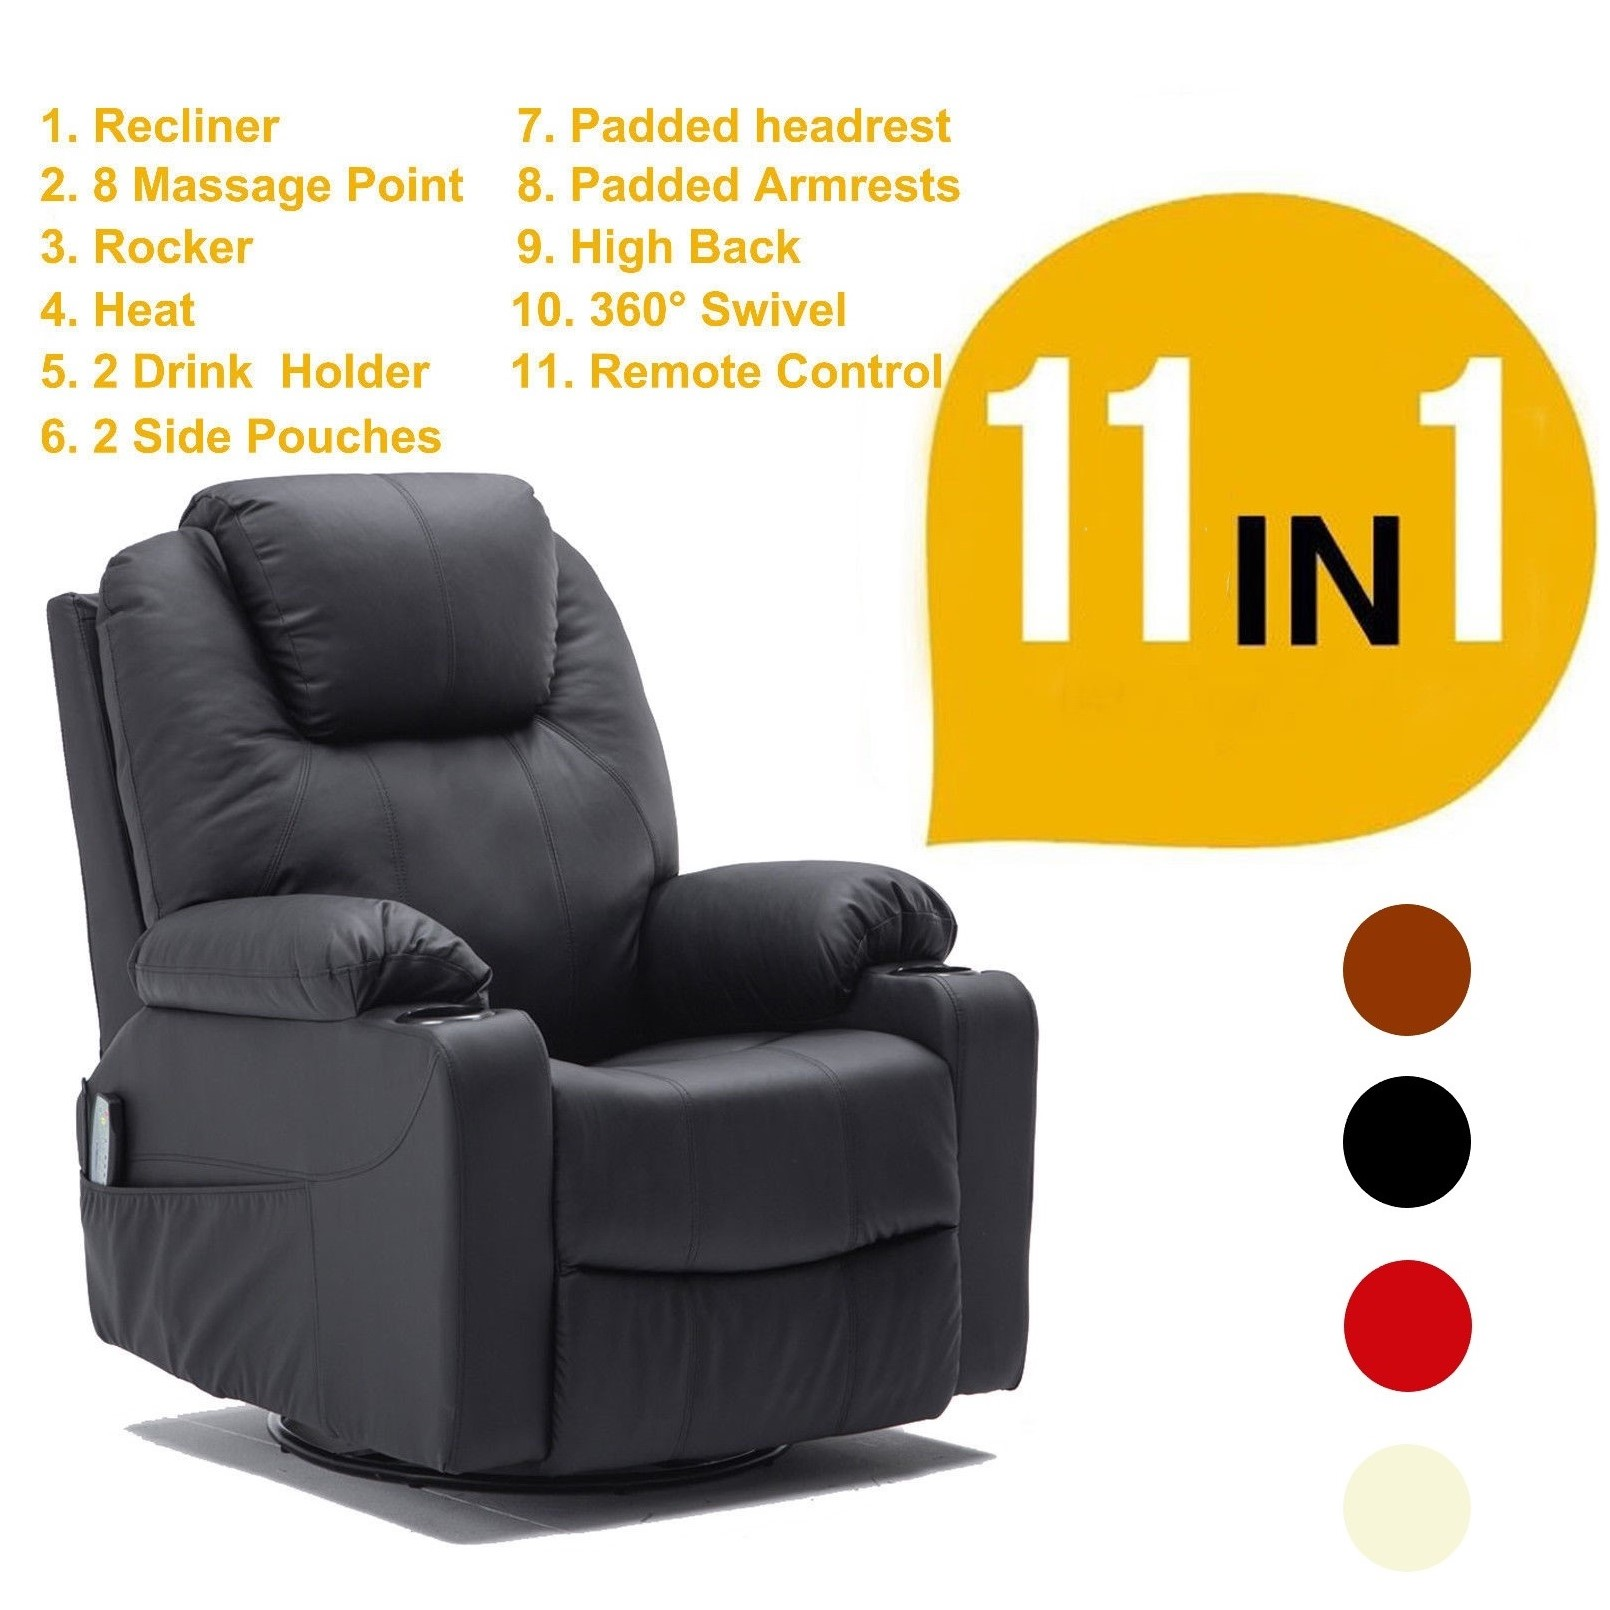 Mcombo Massager Sofa Rocker Recliner Chair PU Leather 360 Swivel Vibration Heat w/ Remote Control  sc 1 st  Walmart & Swivel Recliner Chairs